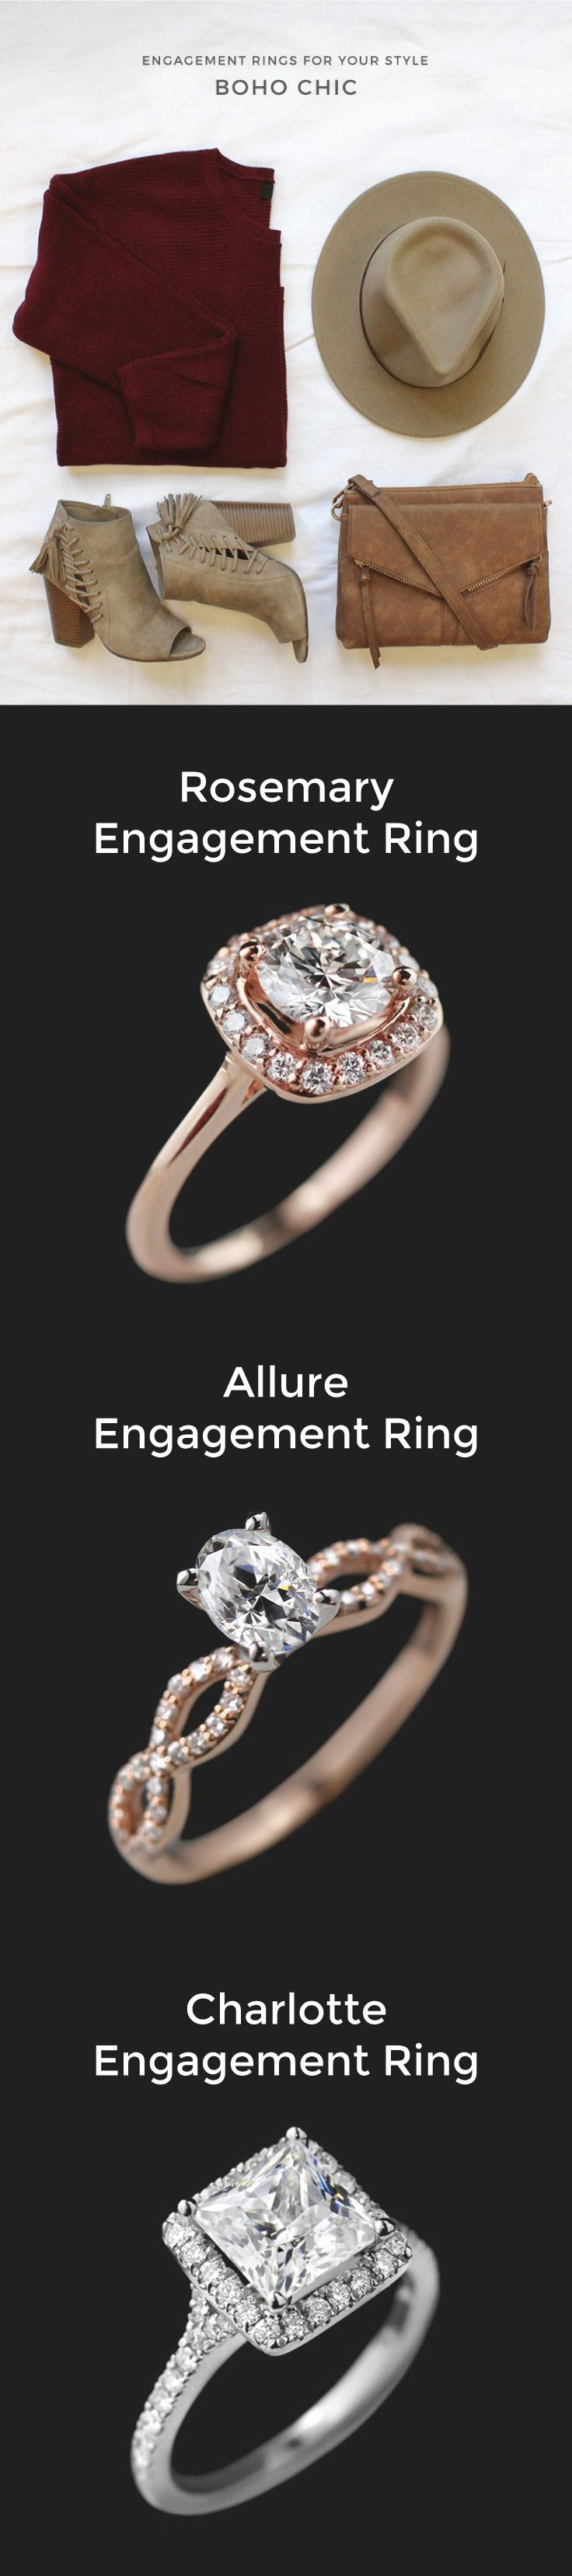 diamonds ring direct design gallery picture hybrid ideas helzberg international wedding rings meaning of full made diamond miadonna engagement competitors size donna pizza creative mia man